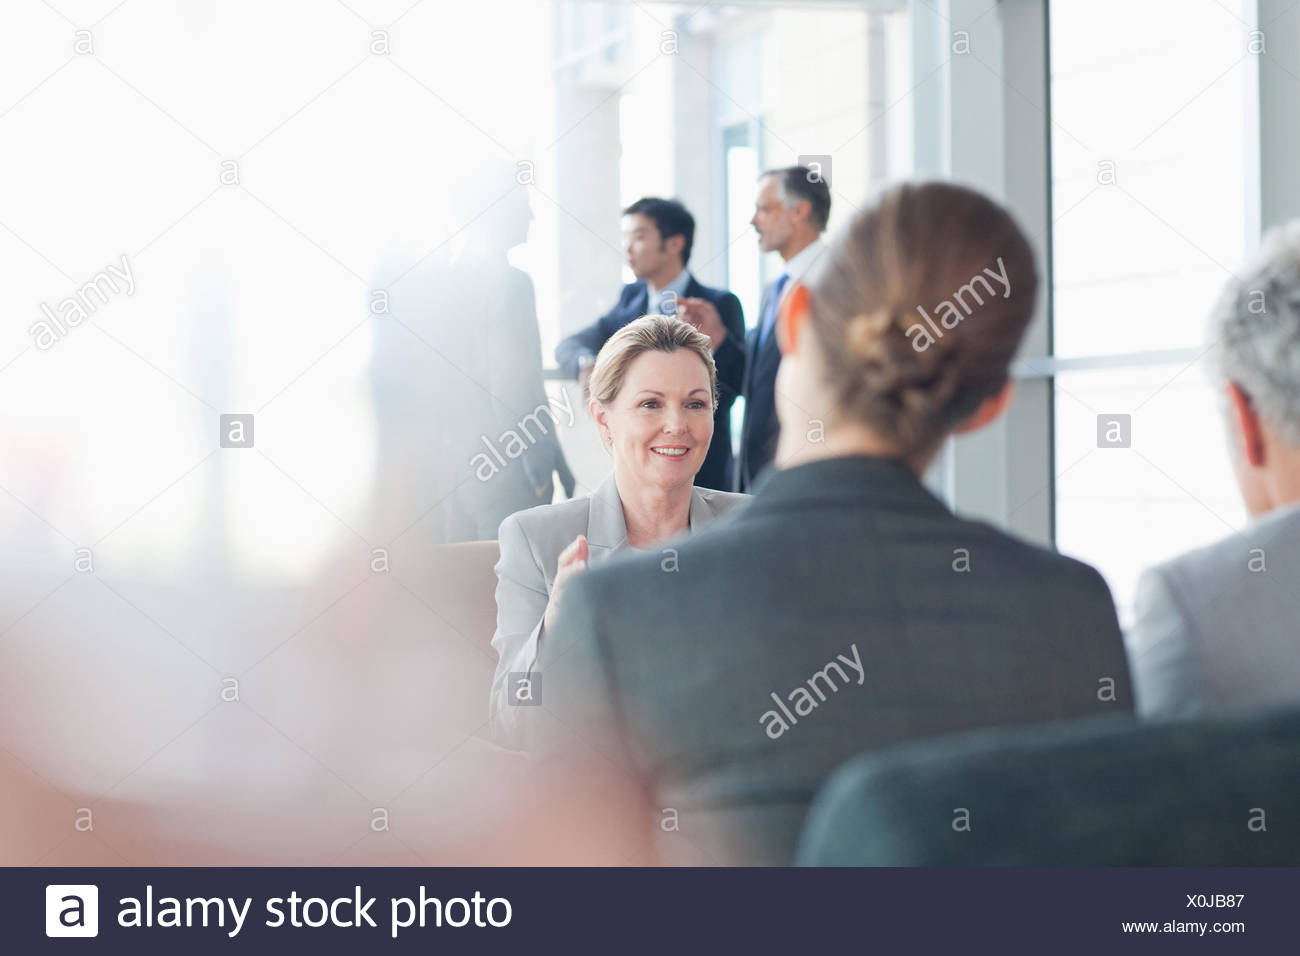 Business people meeting in office - Stock Image